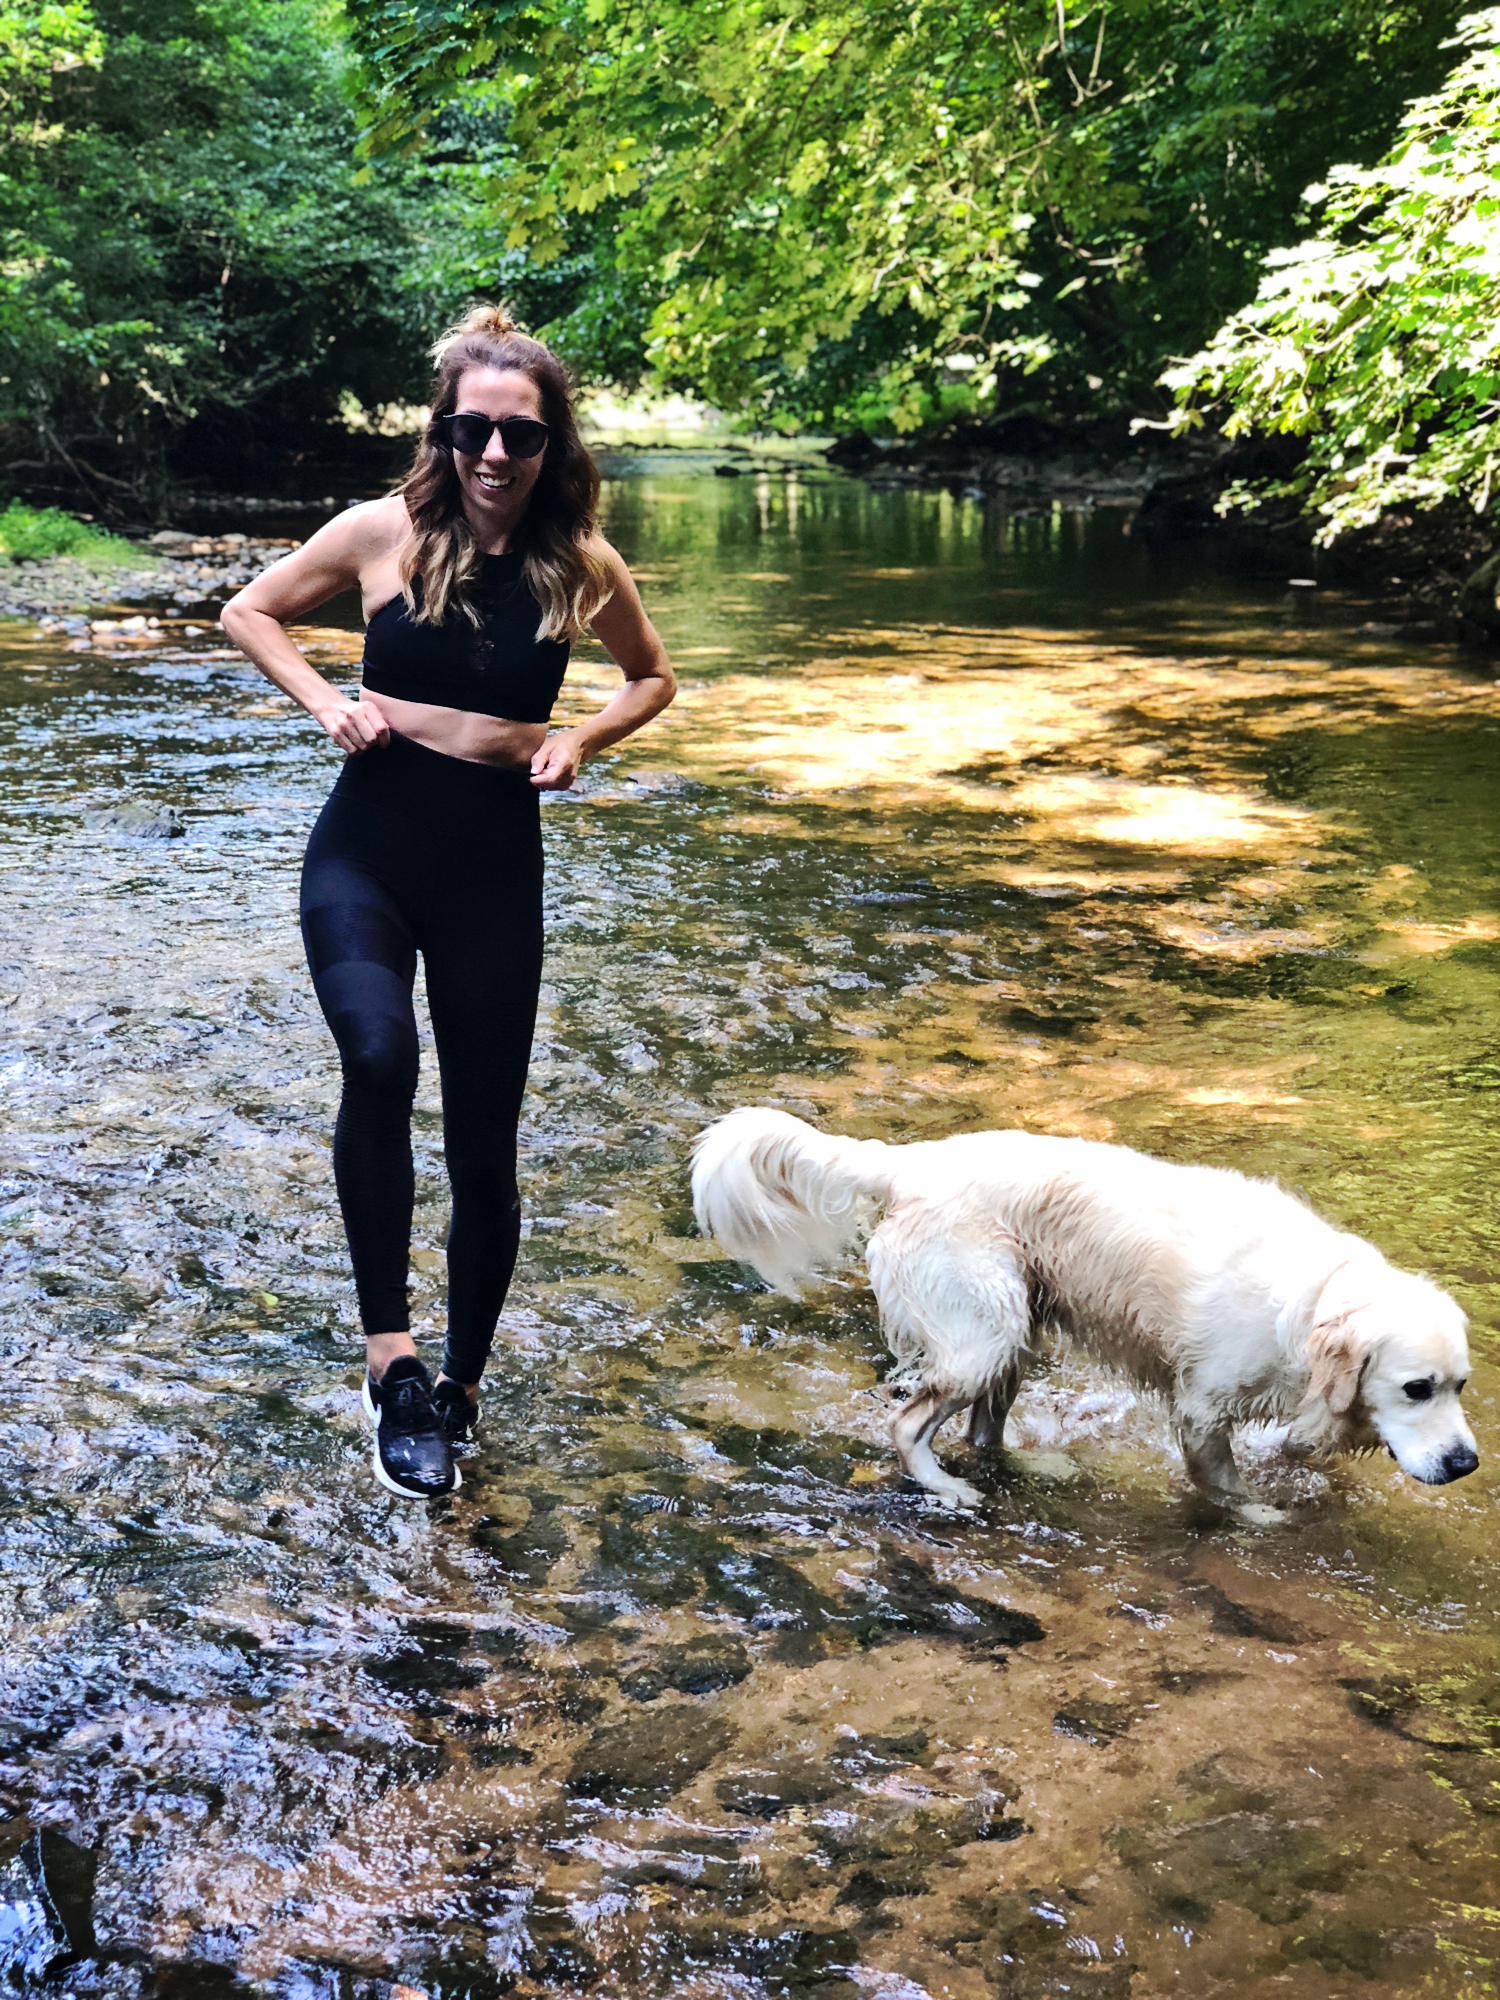 The Motherchic wearing alo leggings from backcountry